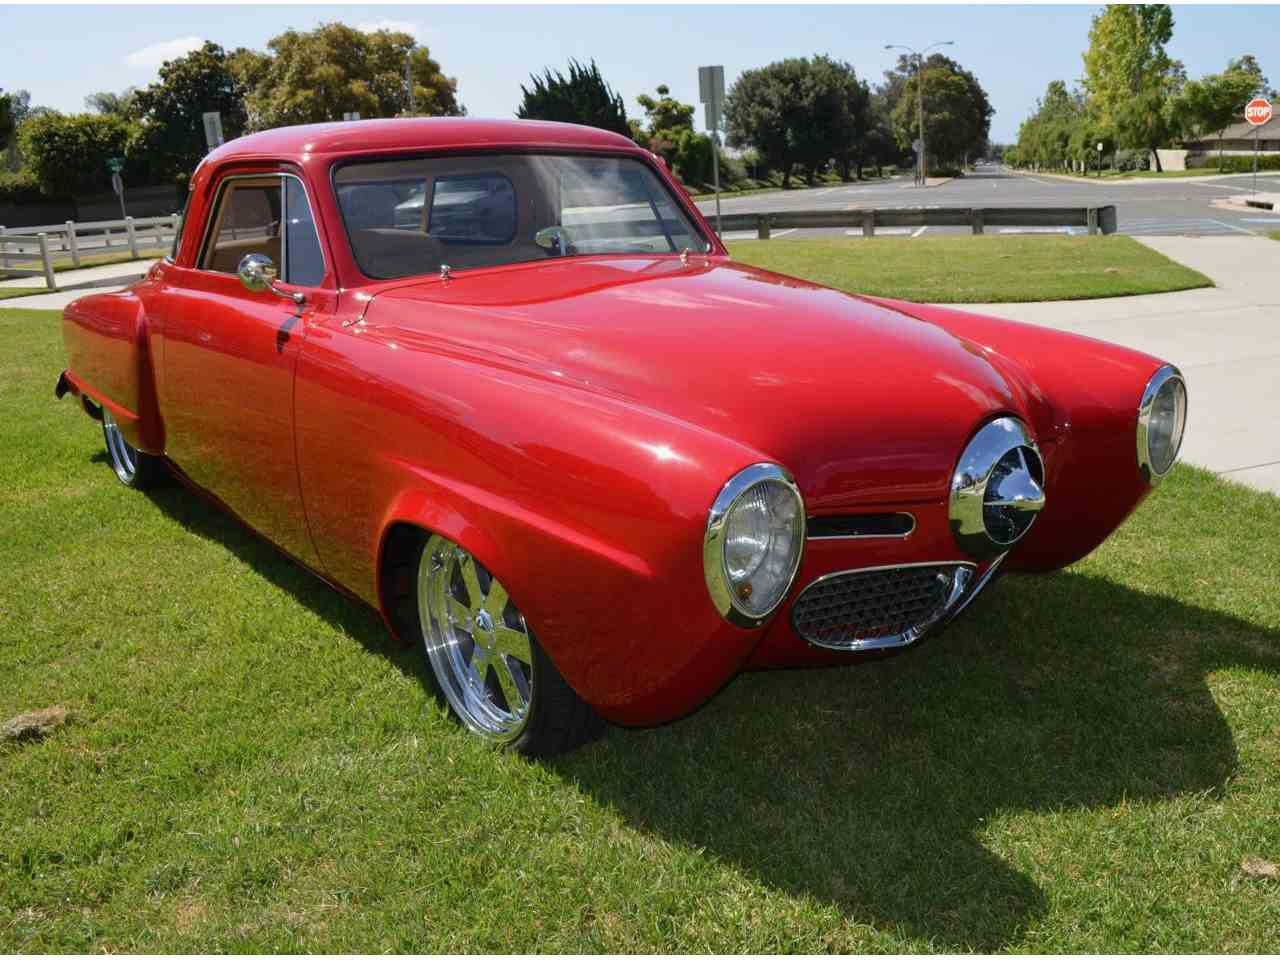 Trucks Under 5000 >> 1948 Studebaker Starlite Coupe Rod for Sale | ClassicCars.com | CC-987756